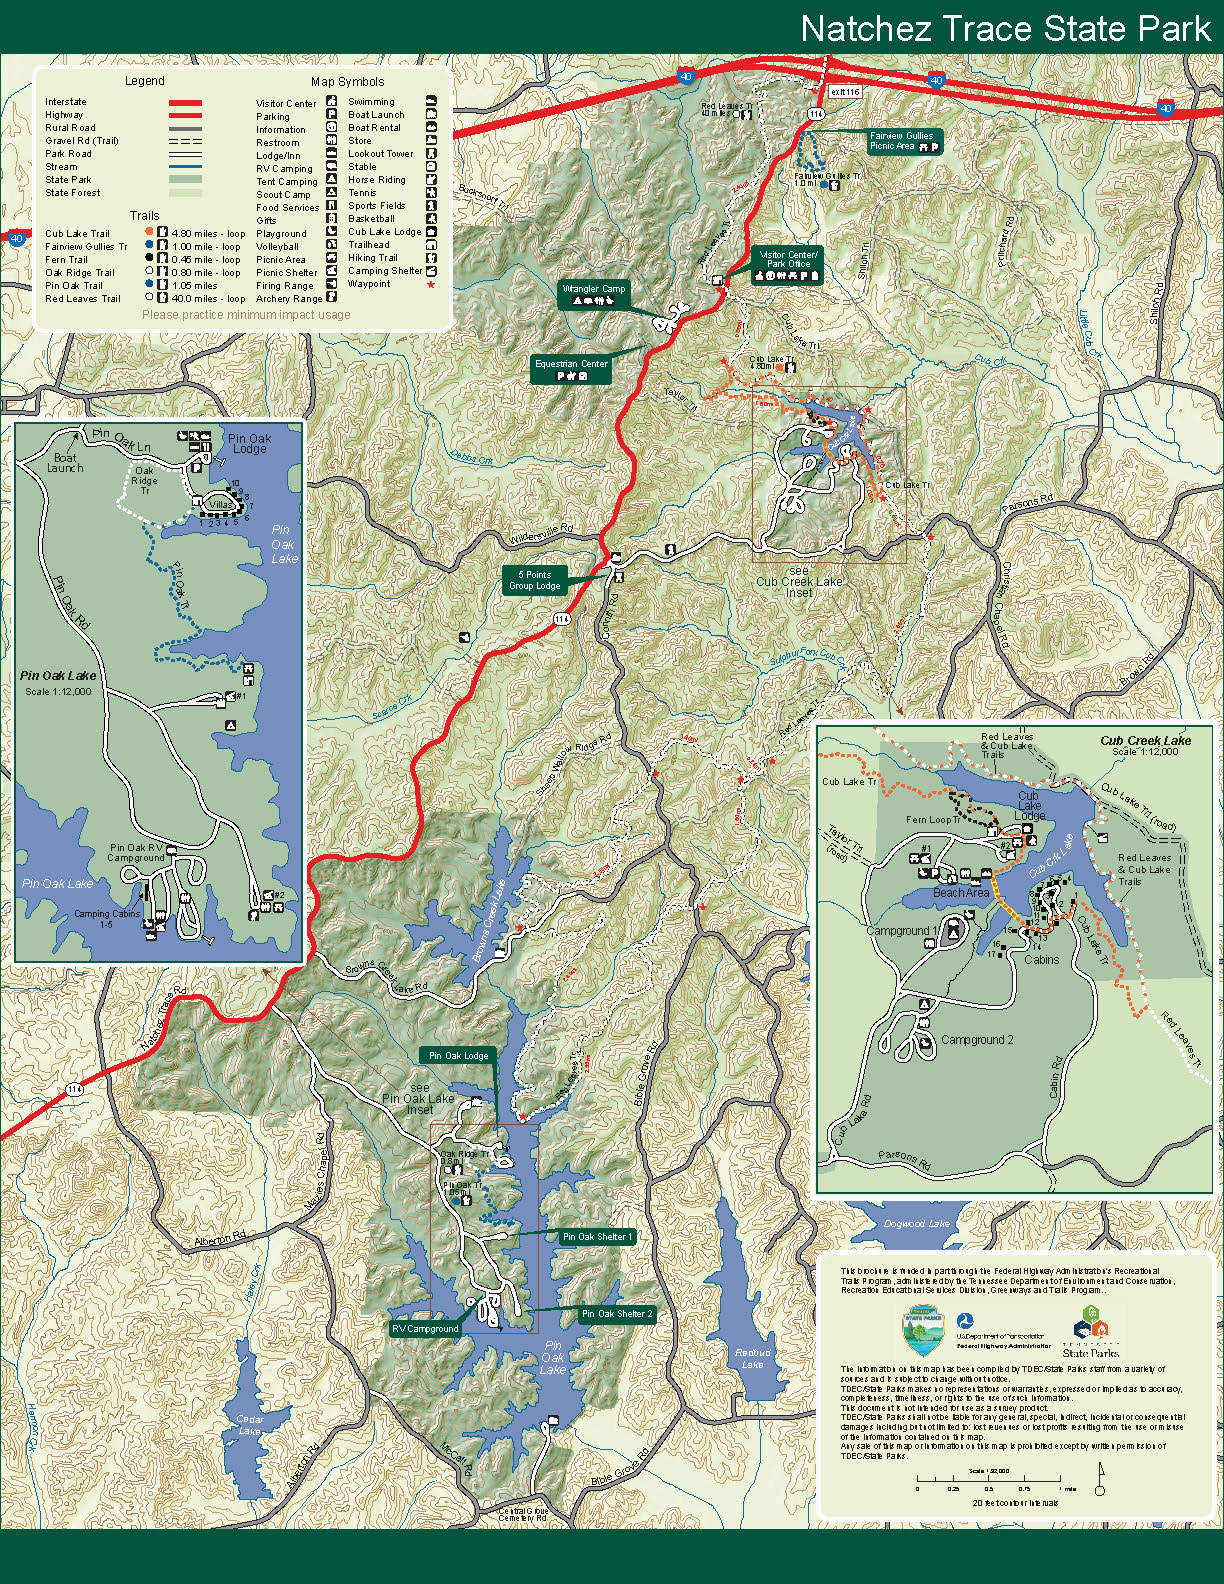 State Parks Tennessee Map.Natchez Trace State Park Tennessee State Parks